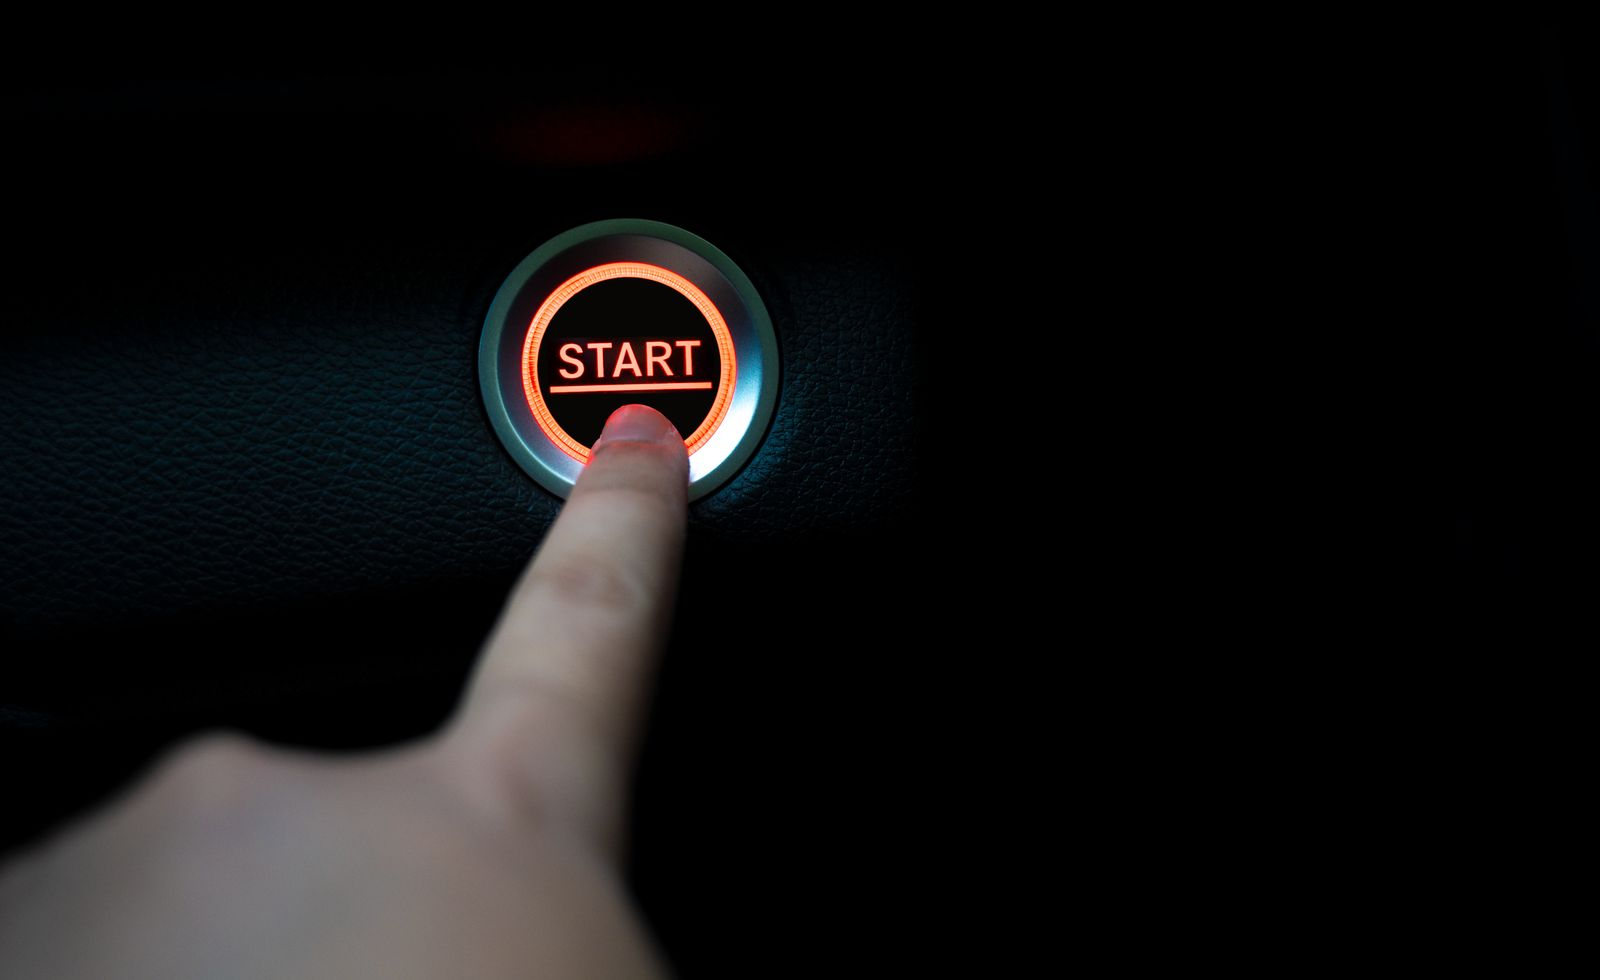 The fingers are pressing the start push button. Startup concept.